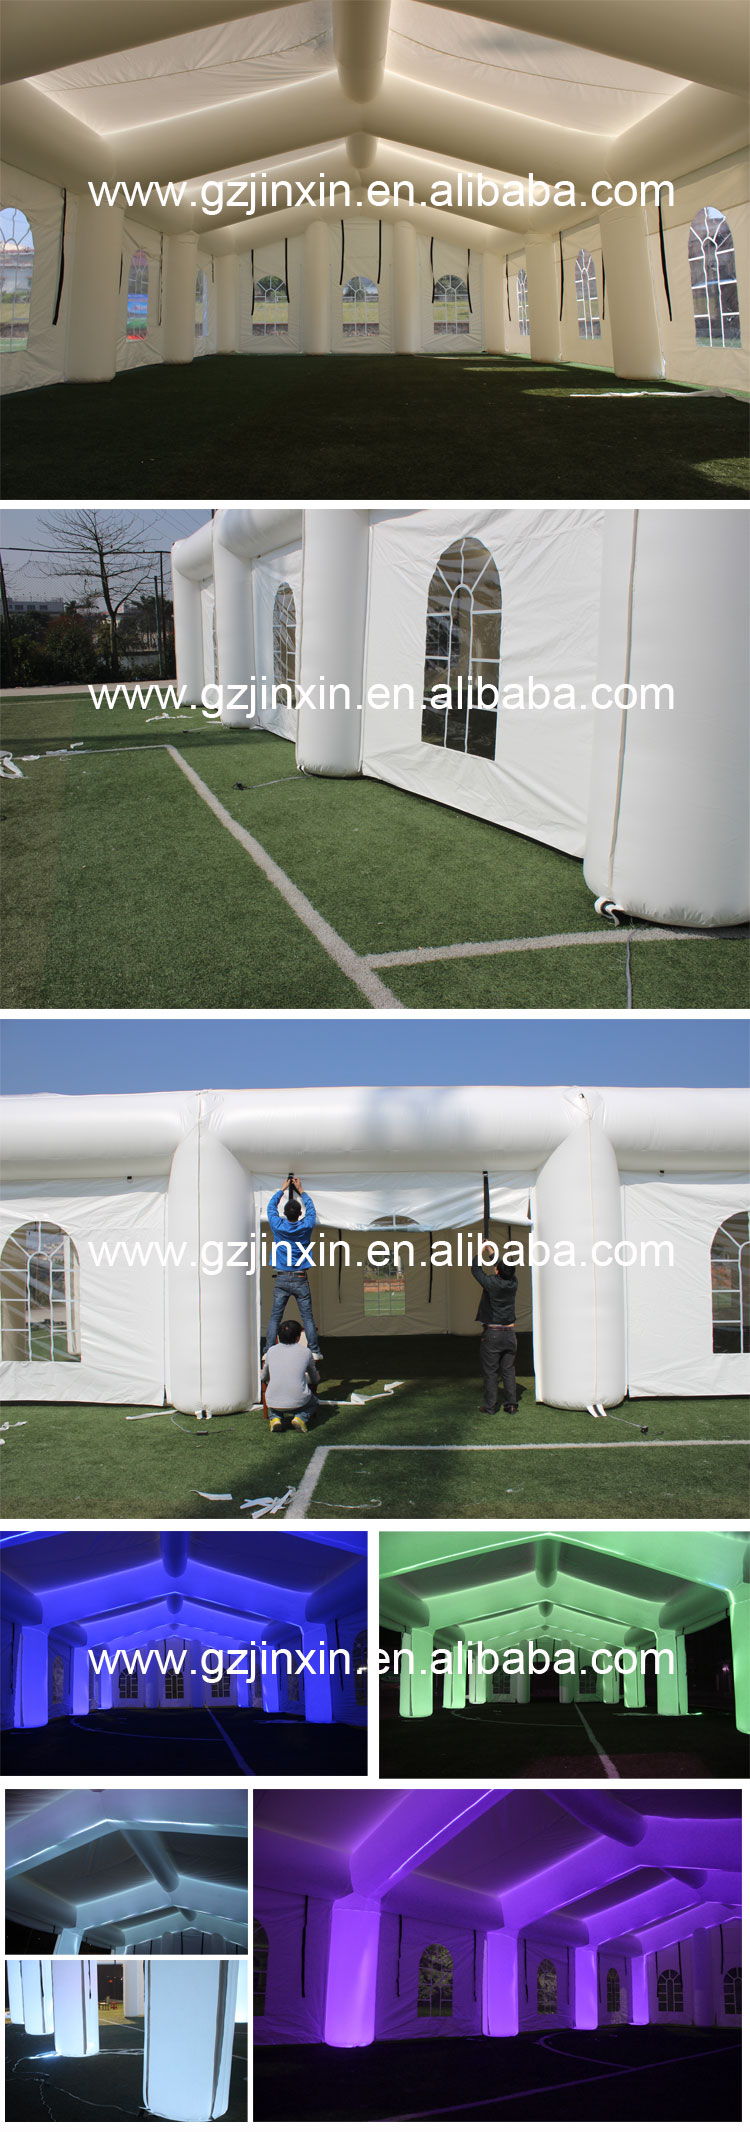 15m x 20m Used Inflatable PVC Party Marriage Wedding Tent Marquee Outdoor Sound Proof Luxury Tent China